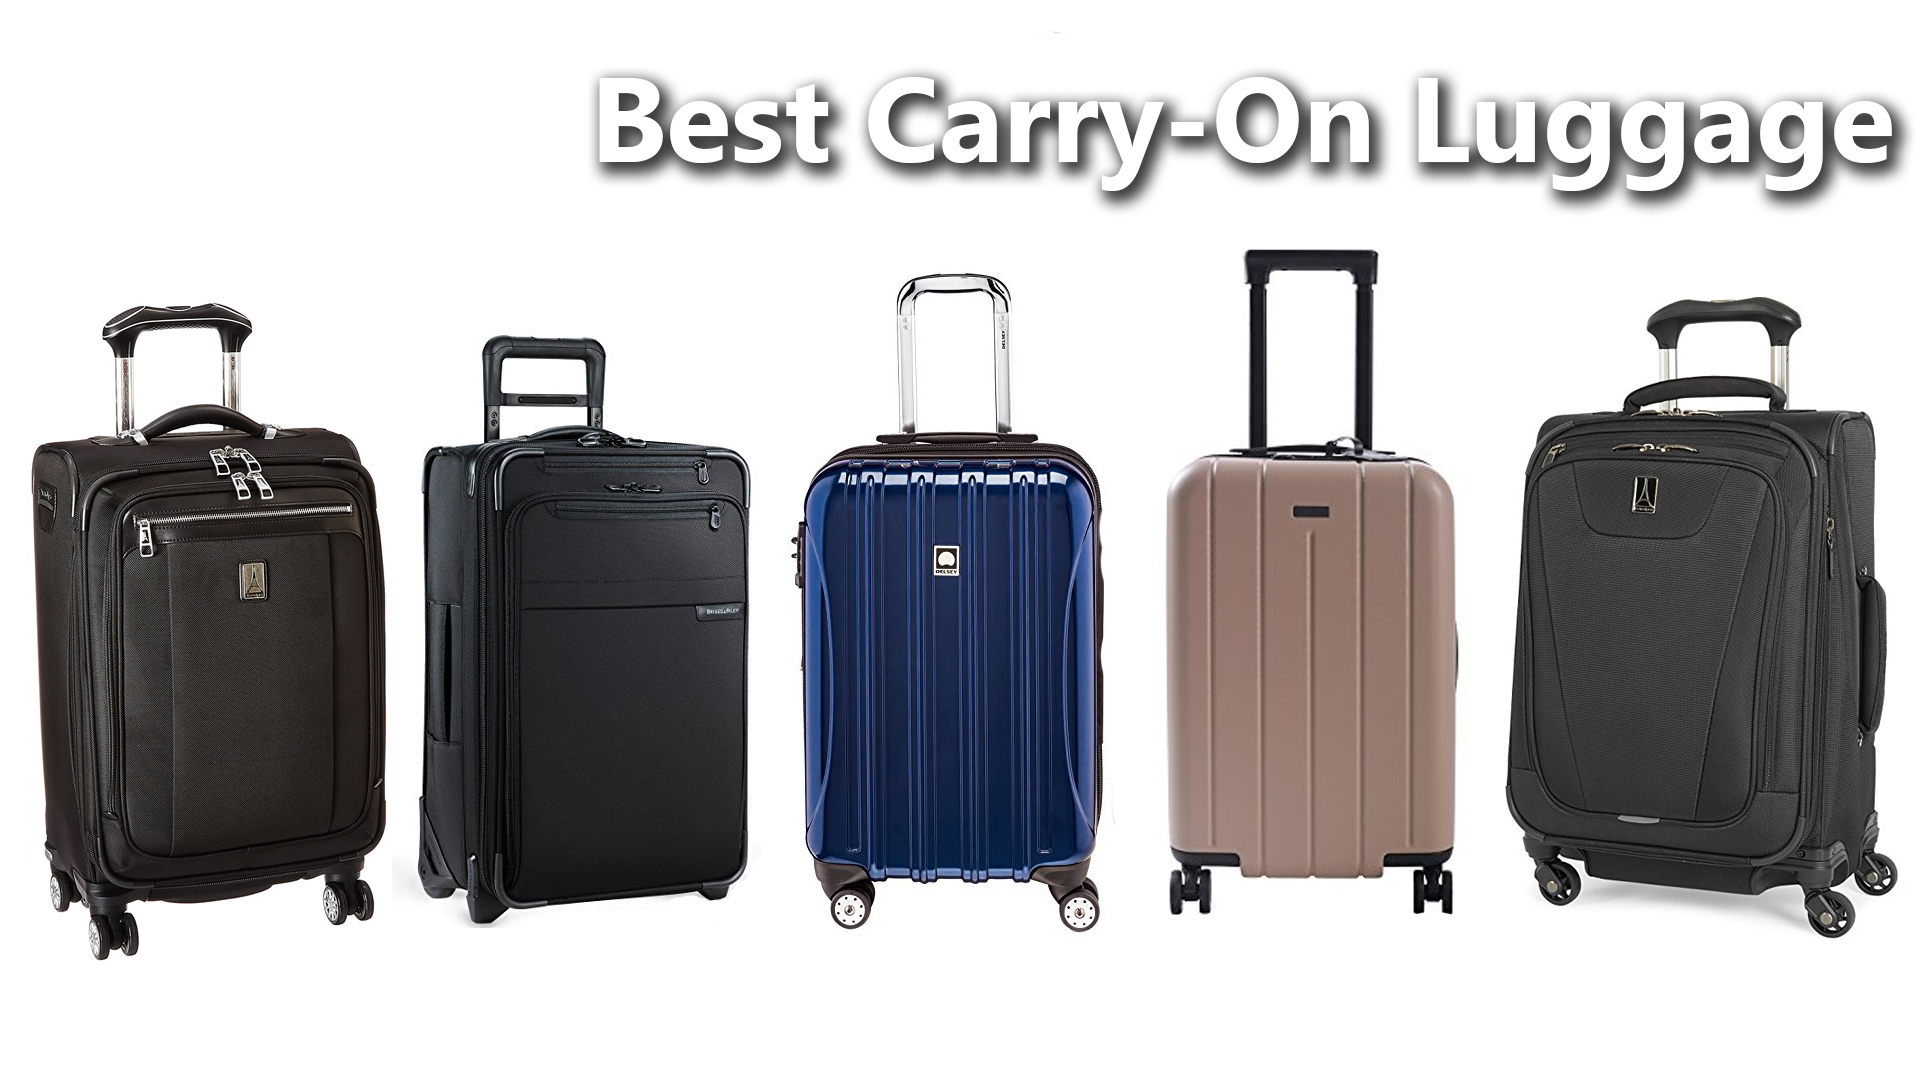 Best Carry-on Luggage – 2018 Edition